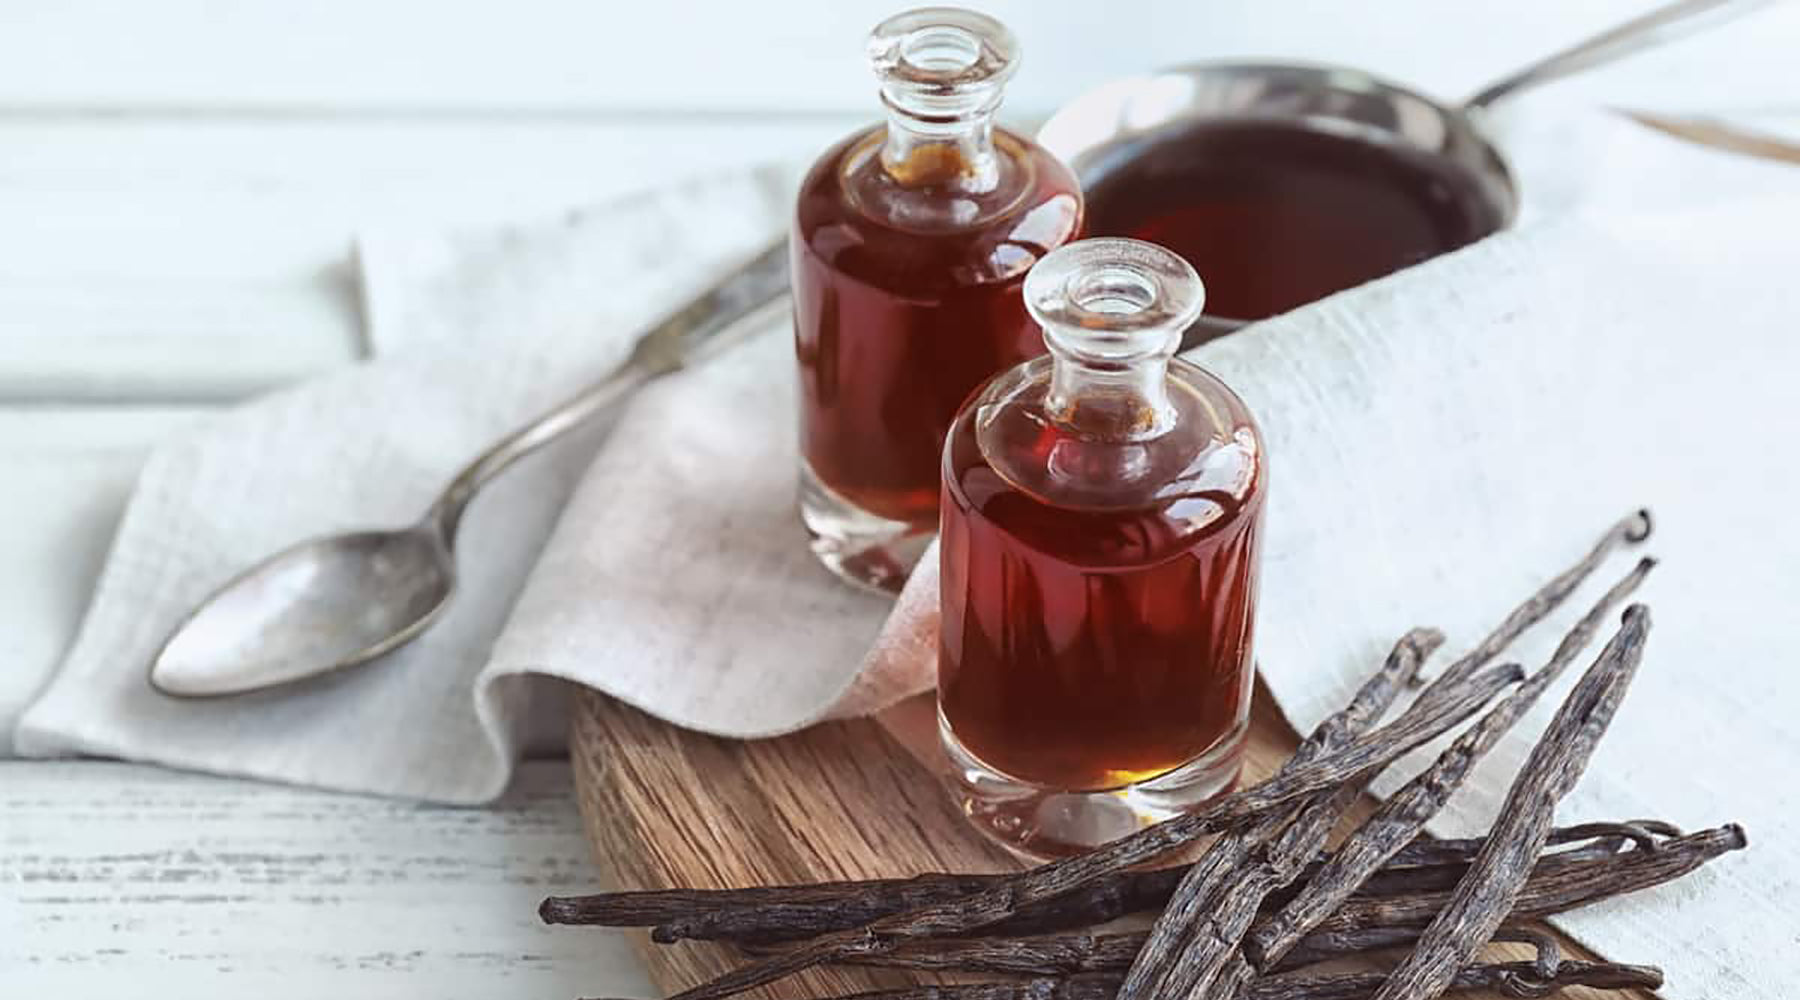 Vanilla extract in a bottle next to vanilla beans